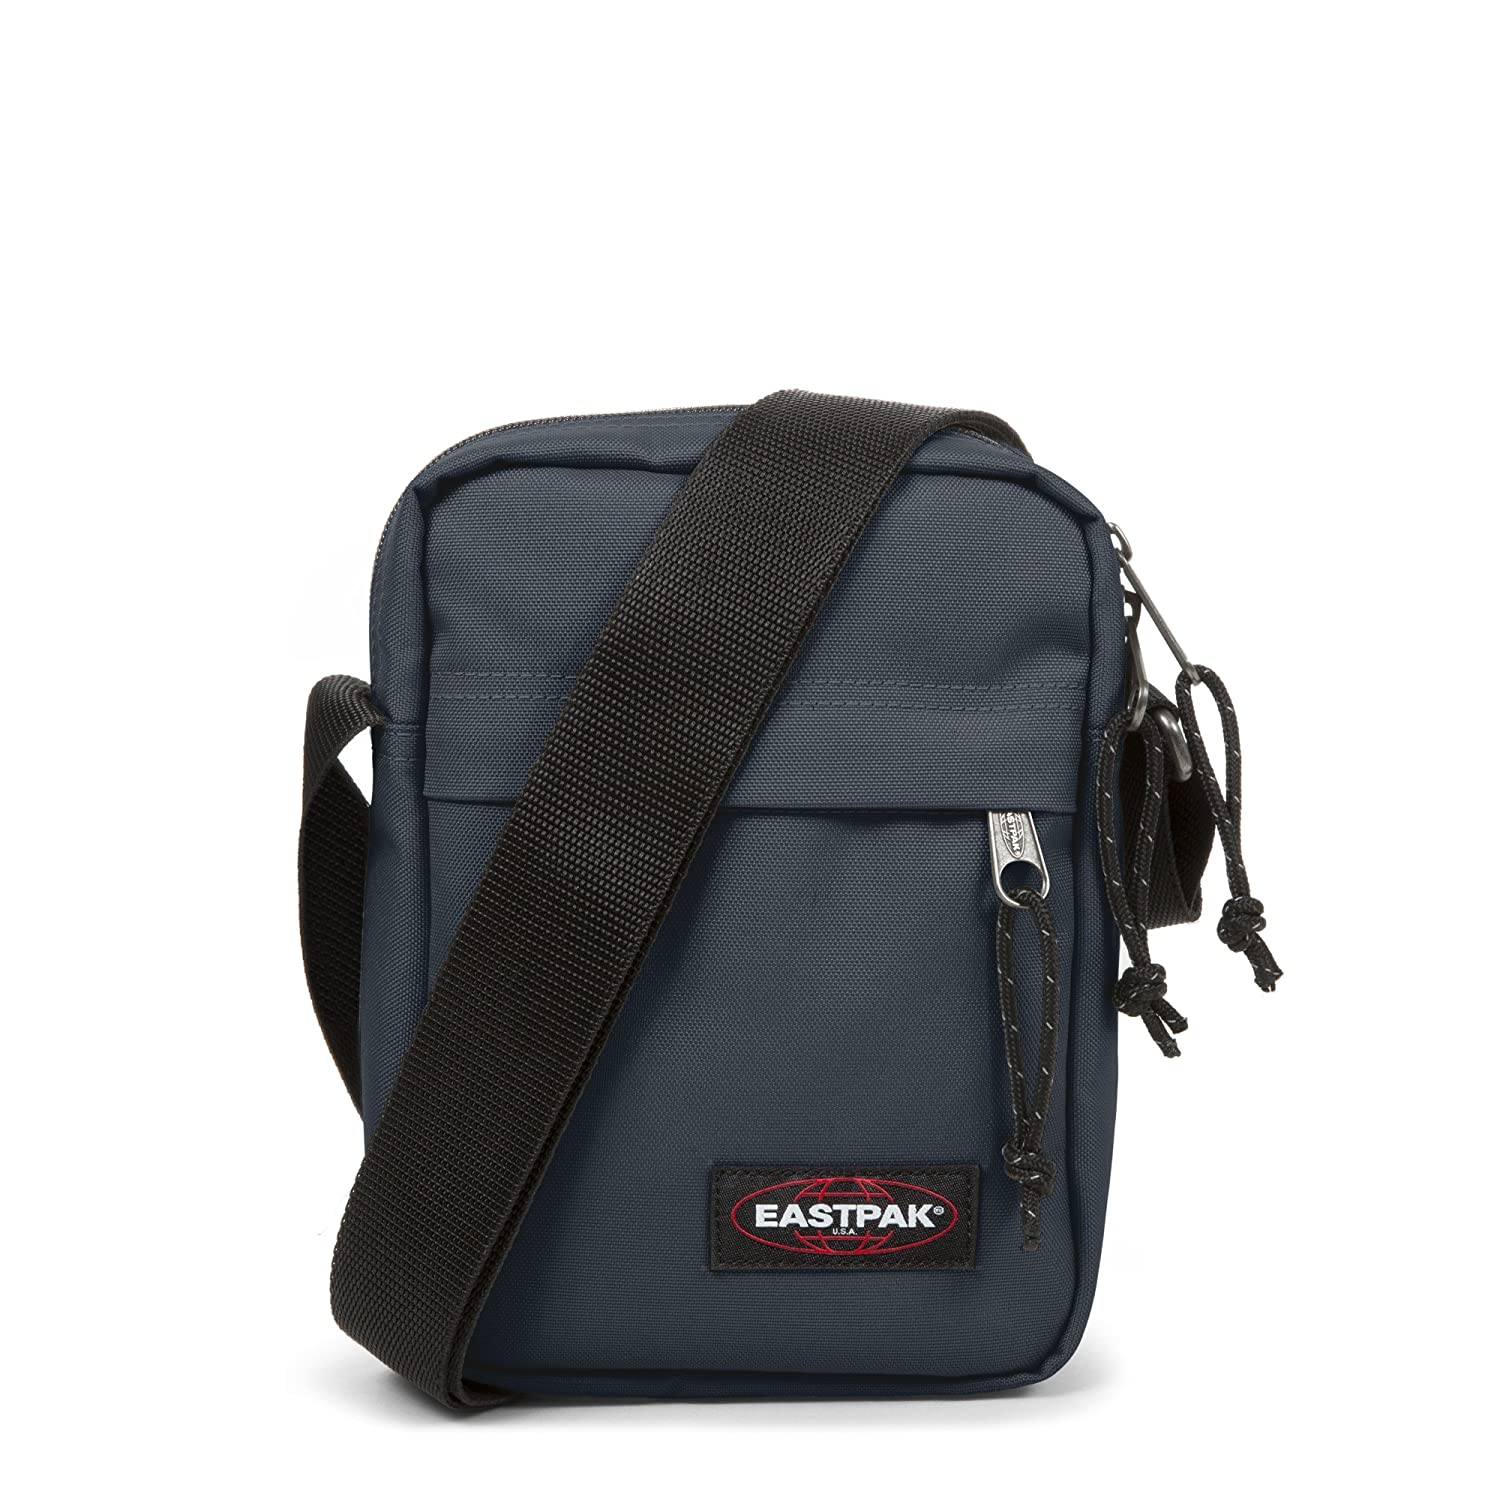 Eastpak The One Bolso bandolera, 21 cm, 2.5 L, Azul (Bogus Blue) EK04569T